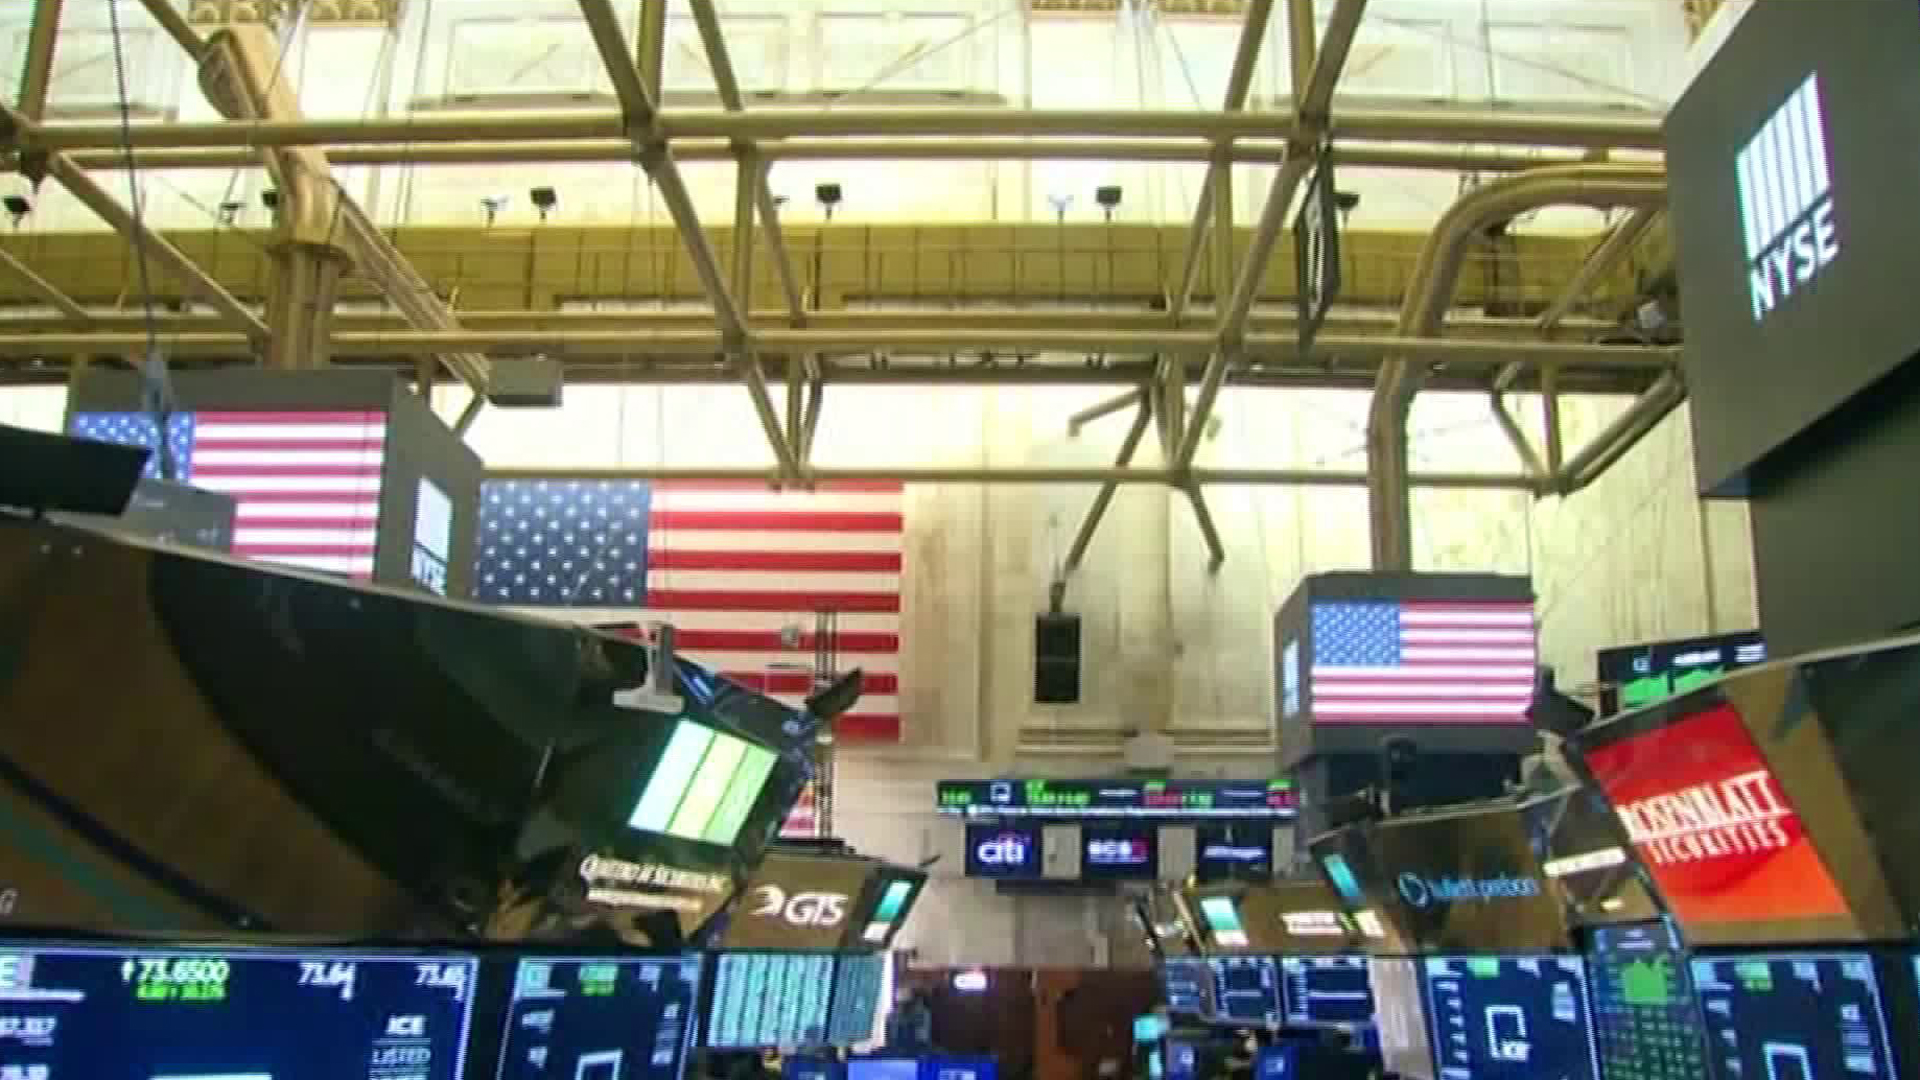 The New York Stock Exchange floor is shown on March 24, 2020. (CNN)